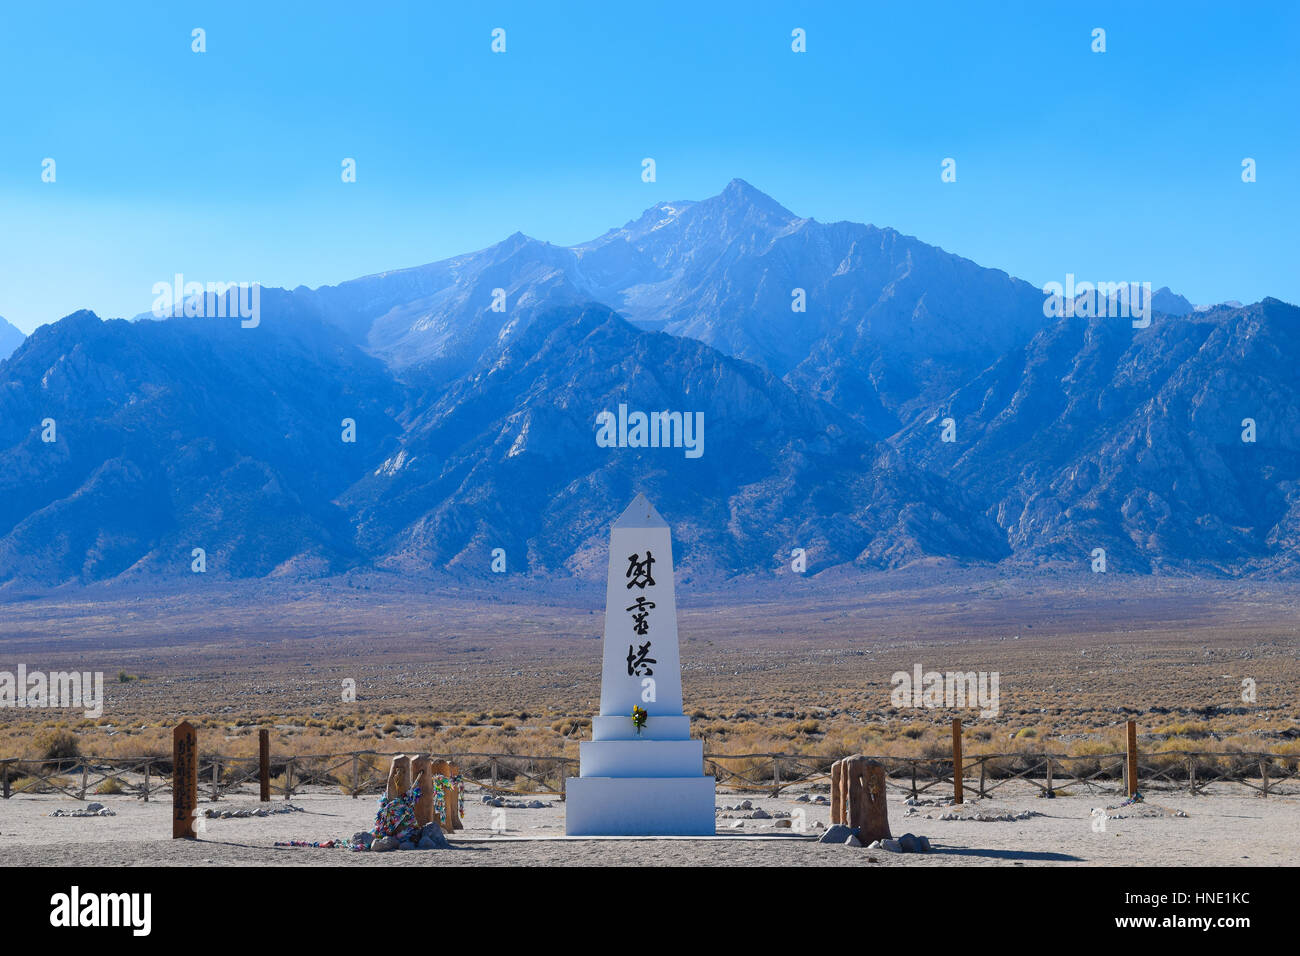 """Manzanar's massive stone monument reads """"Soul Consoling Tower"""", in memory of the atrocities committed and lives - Stock Image"""